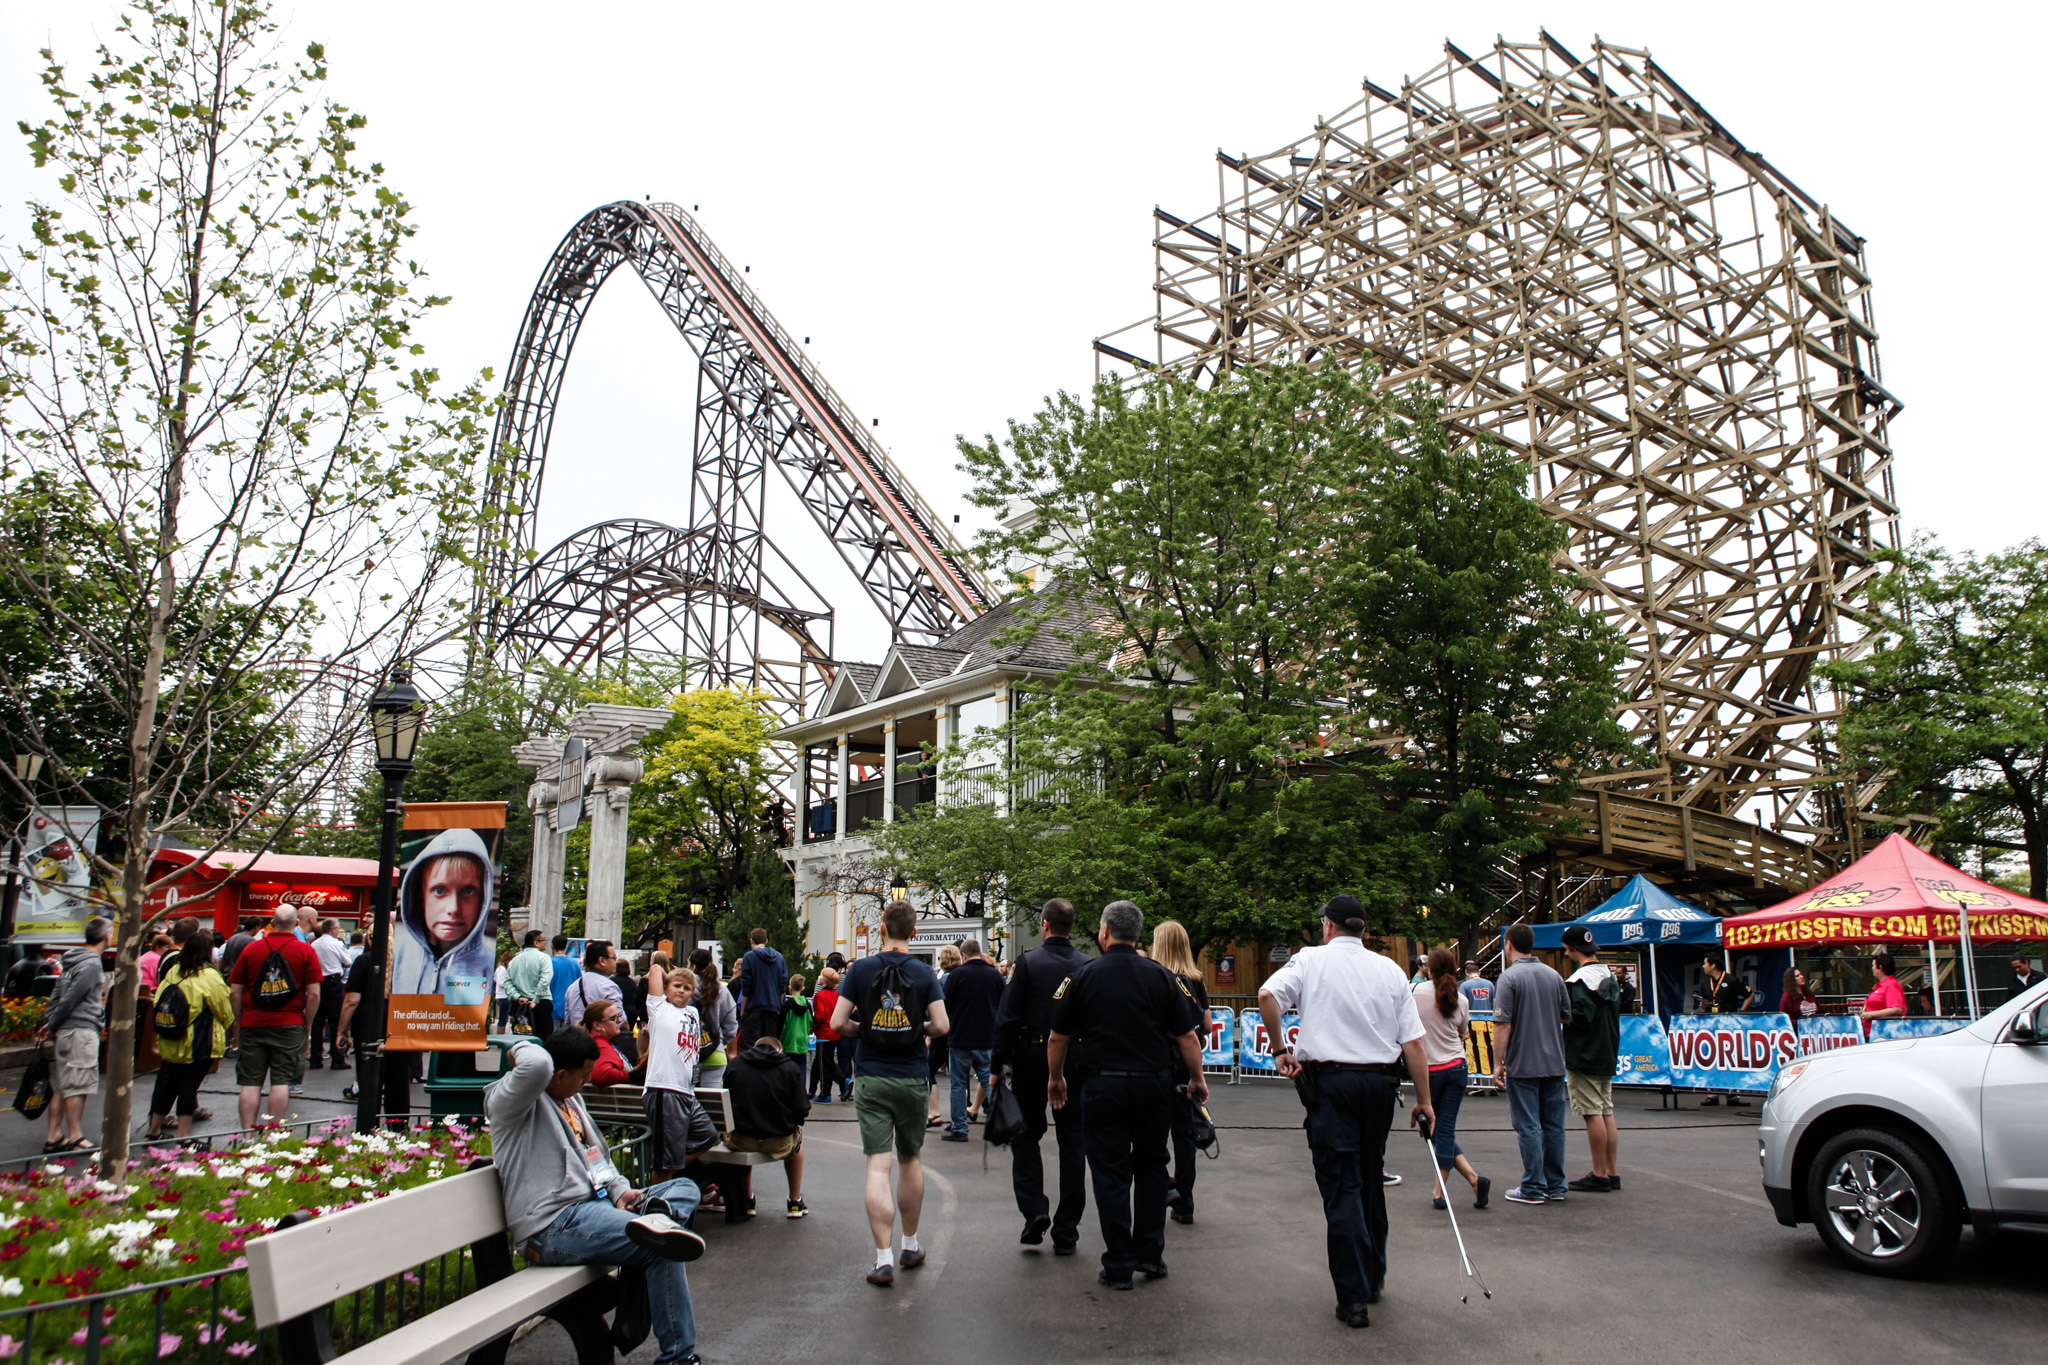 Goliath, the newest roller coaster at Six Flags Great America, opens to the public on June 19.